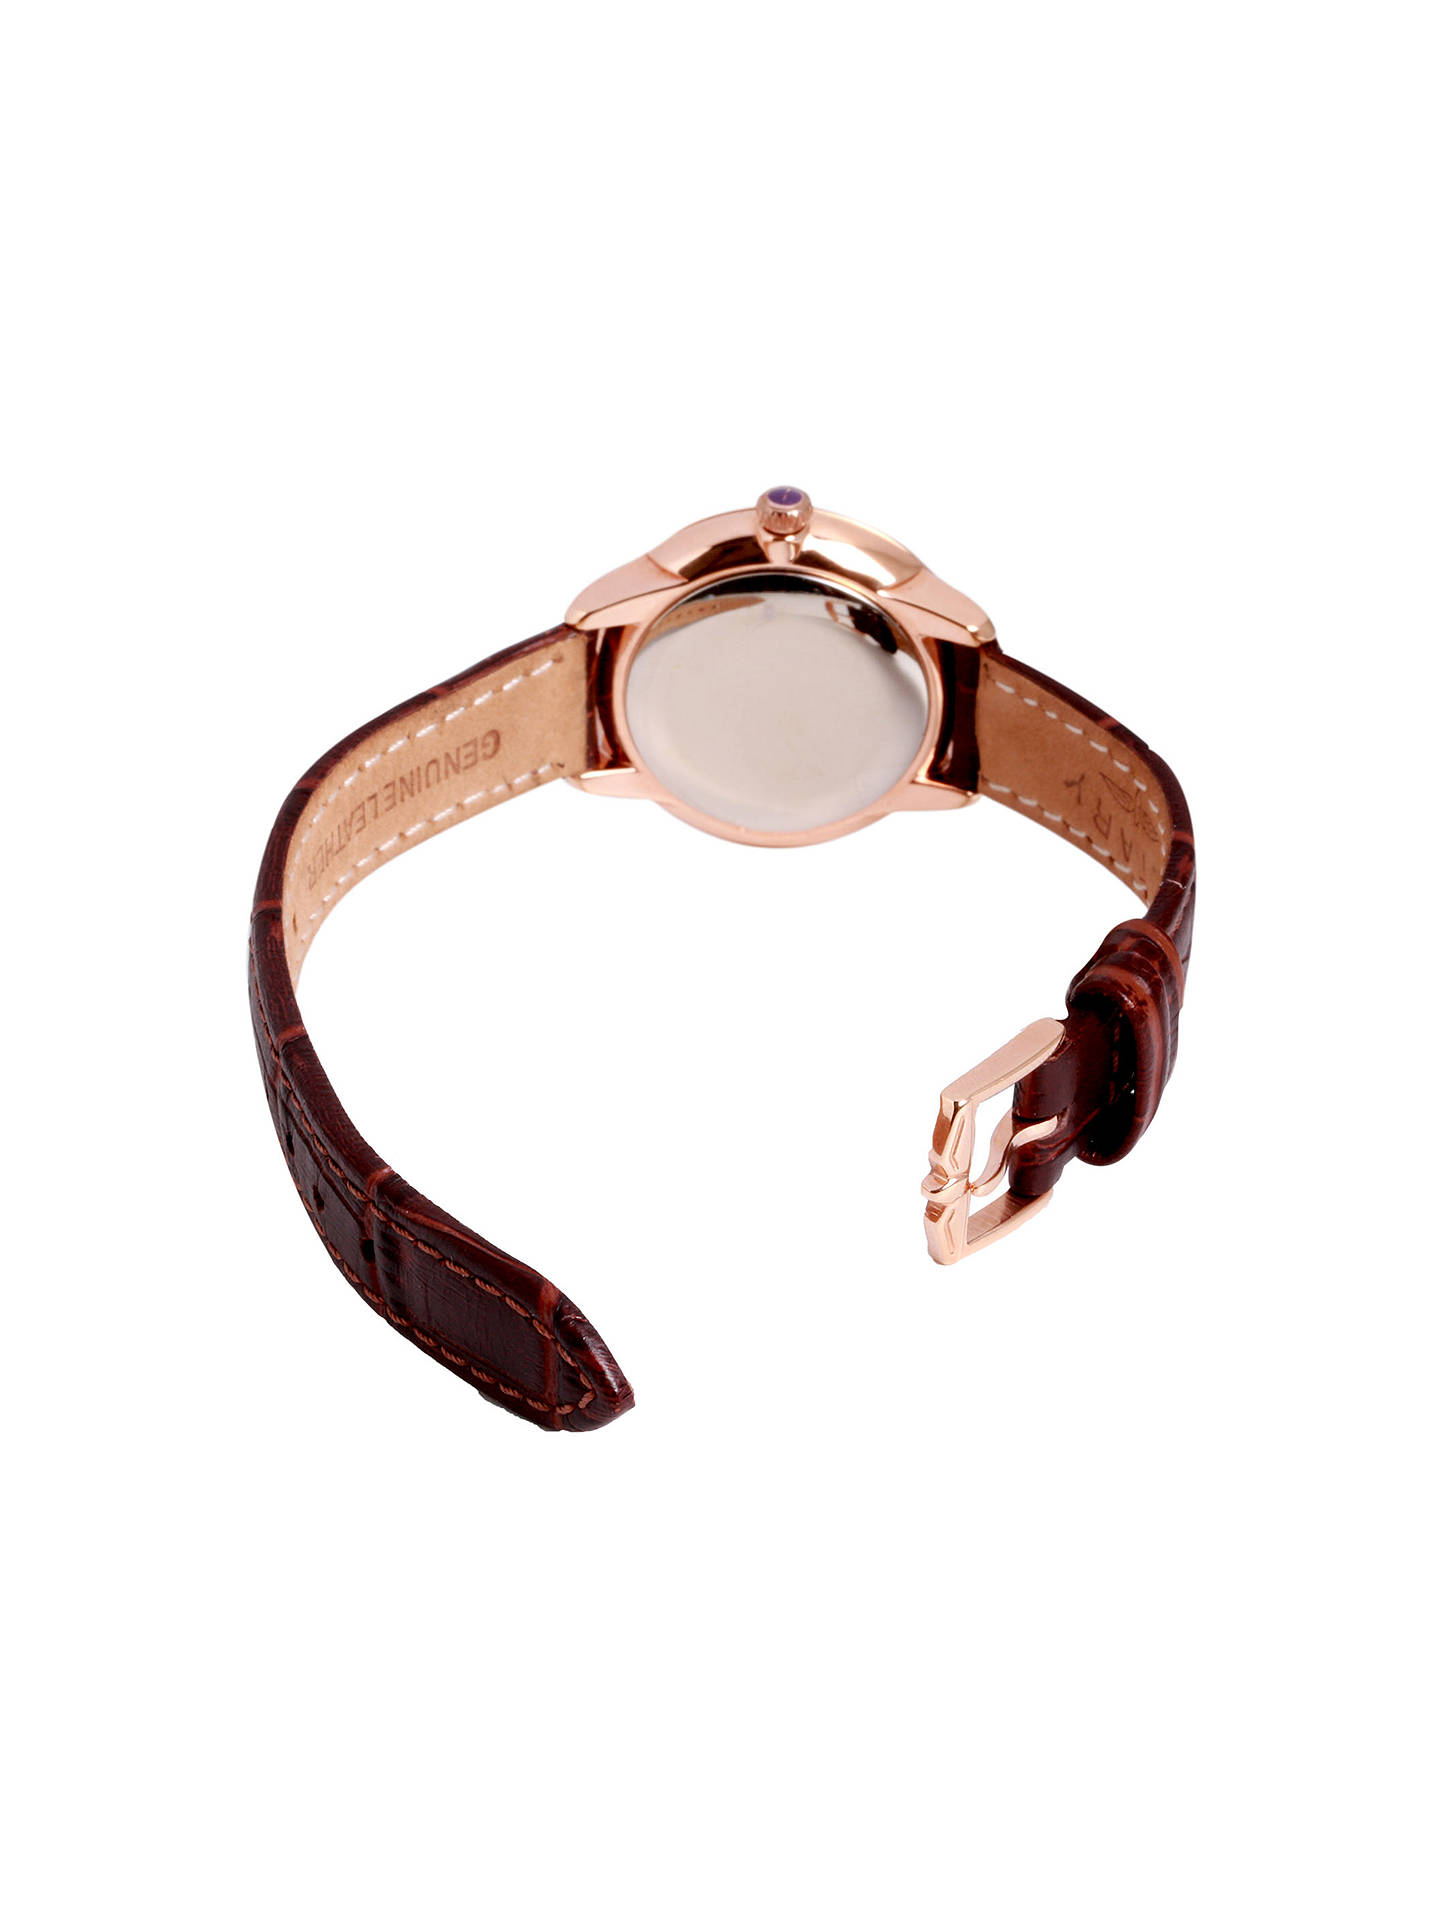 BuyRotary LS02919/03 Women's Elise Leather Strap Watch, Brown/White Online at johnlewis.com